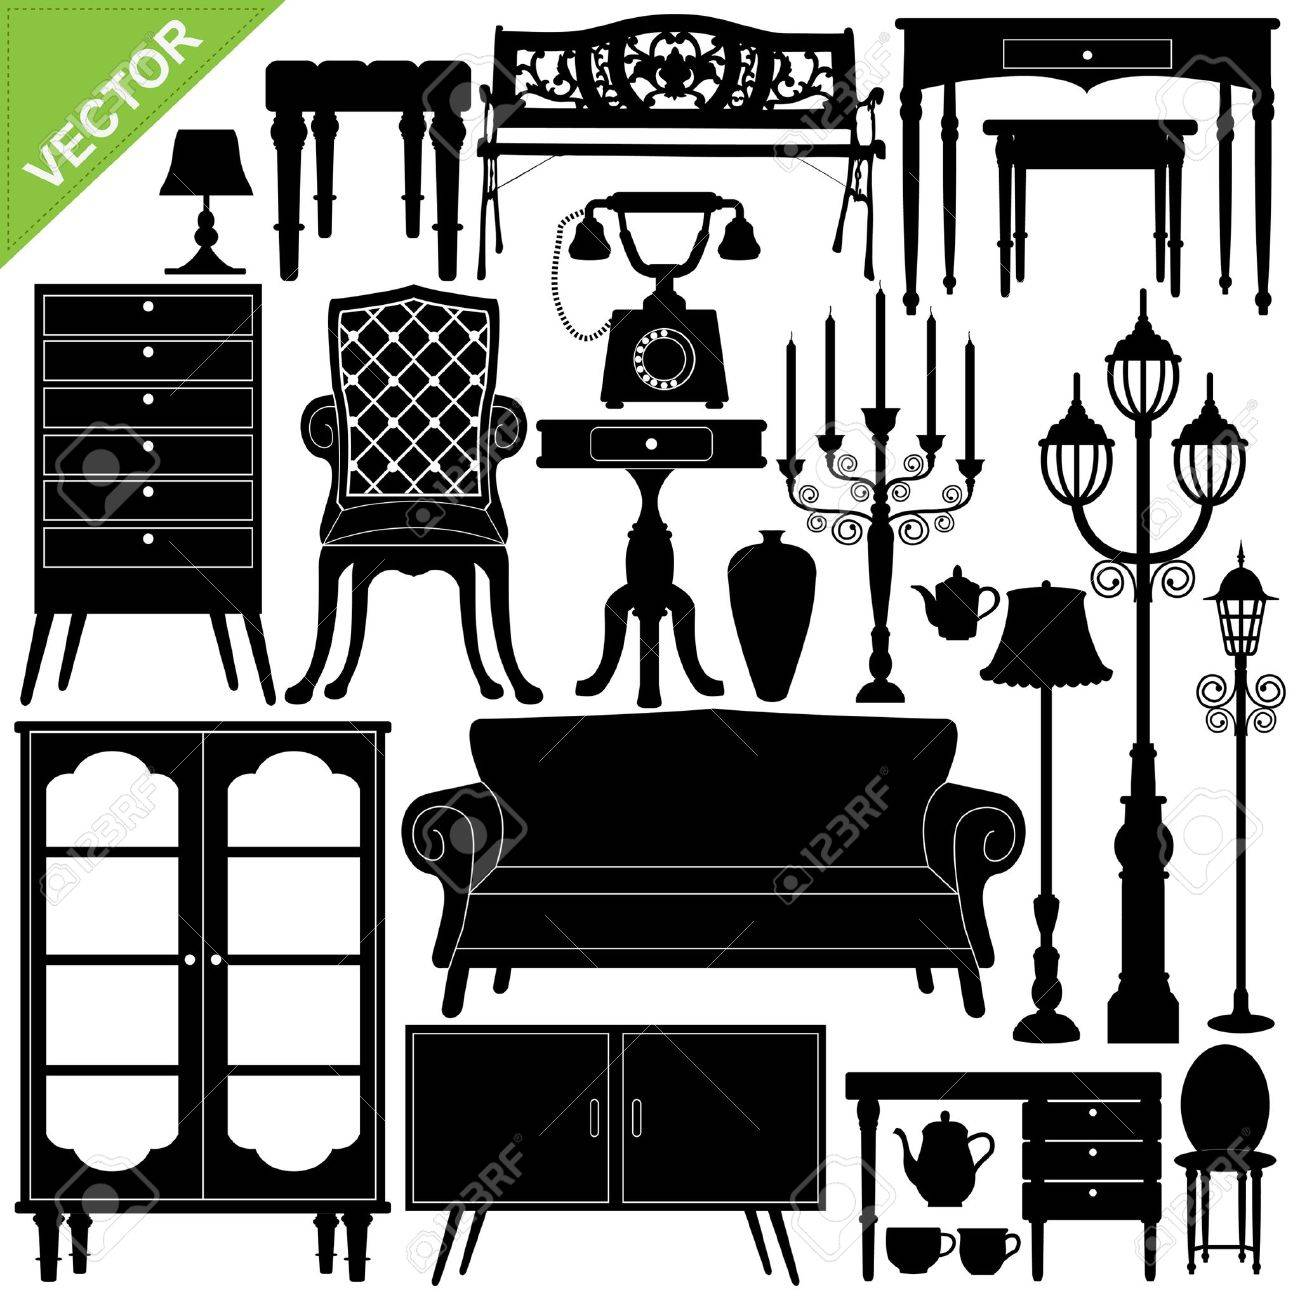 Antique chair silhouette - Set Of Antique Furniture Silhouettes Stock Vector 17376855